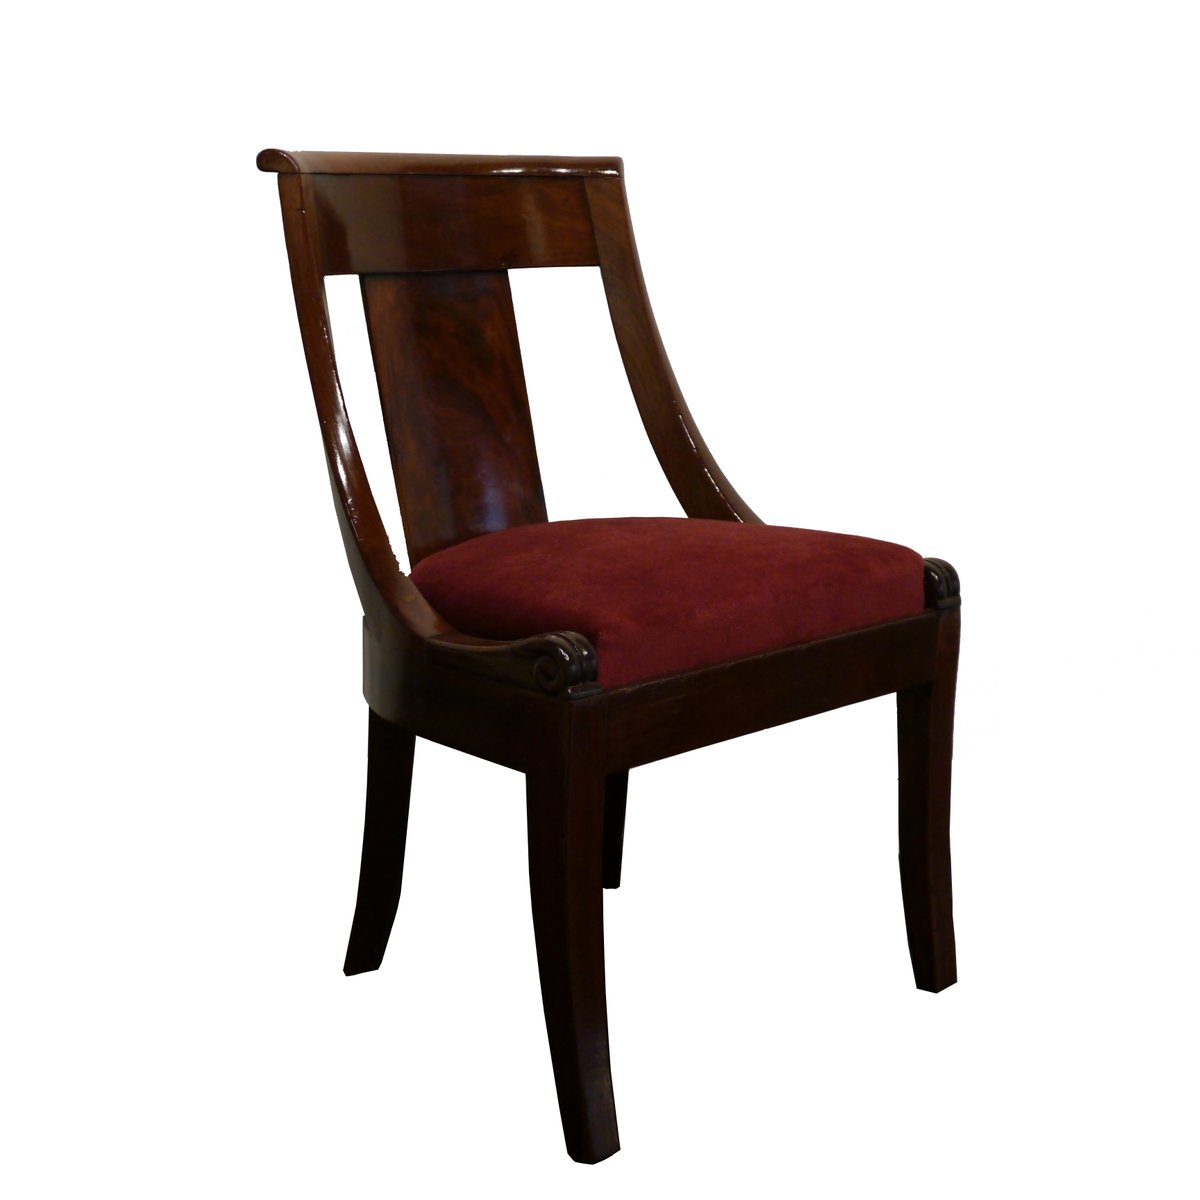 French Antique Children's Chair - French Antique Children's Chair For Sale At Pamono